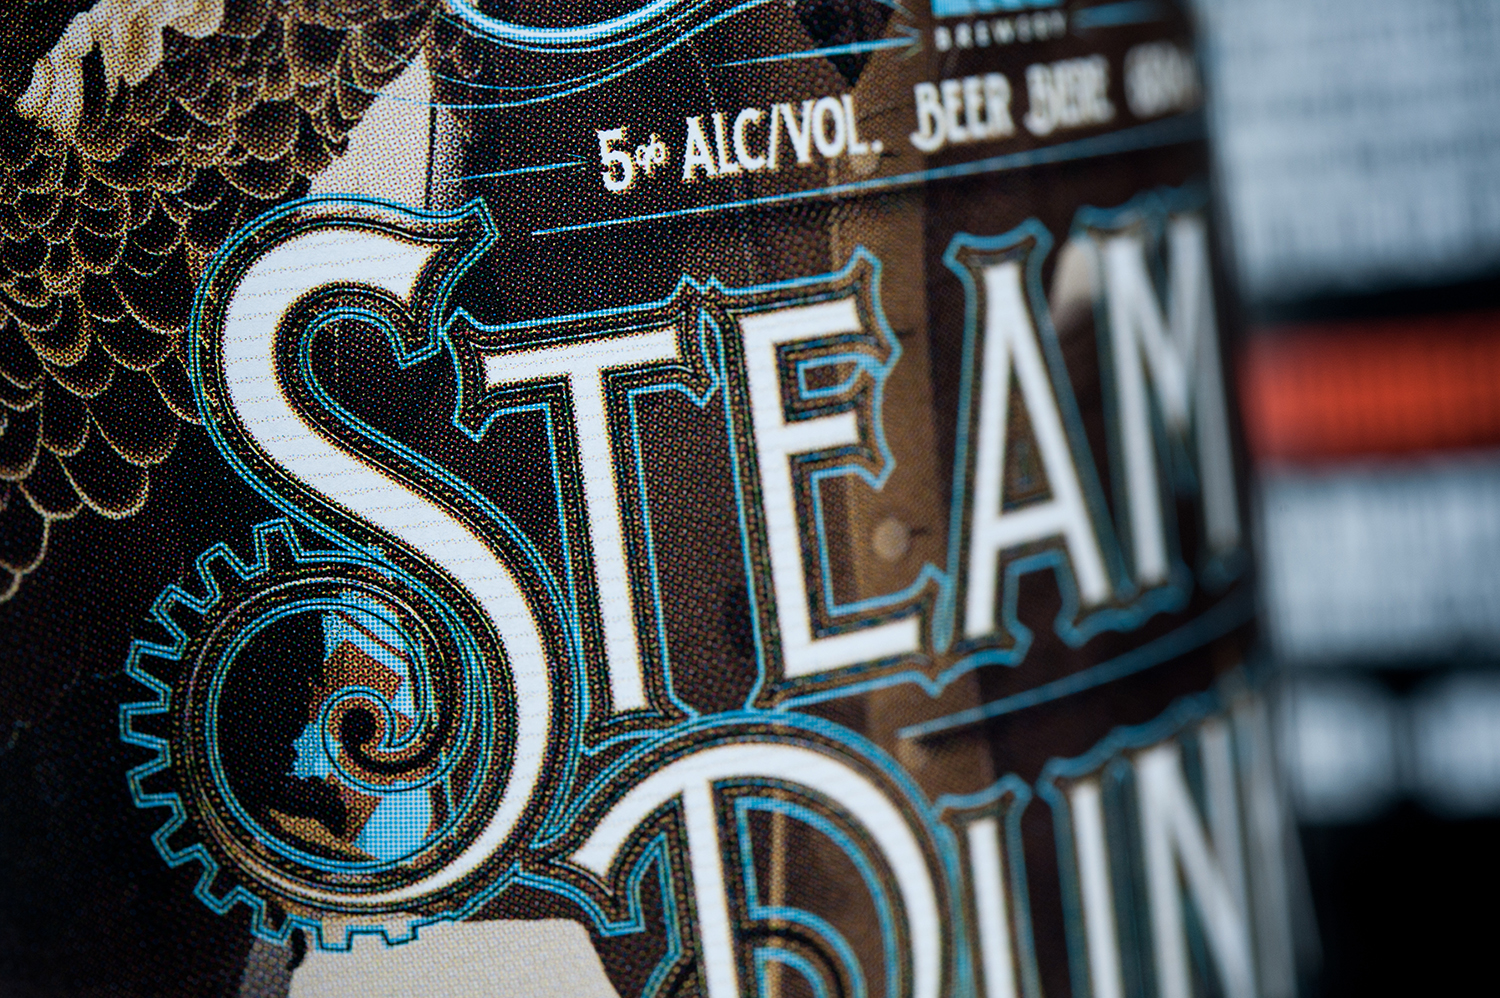 Packaging Design for Longwood Brewery's Steampunk Dunkel